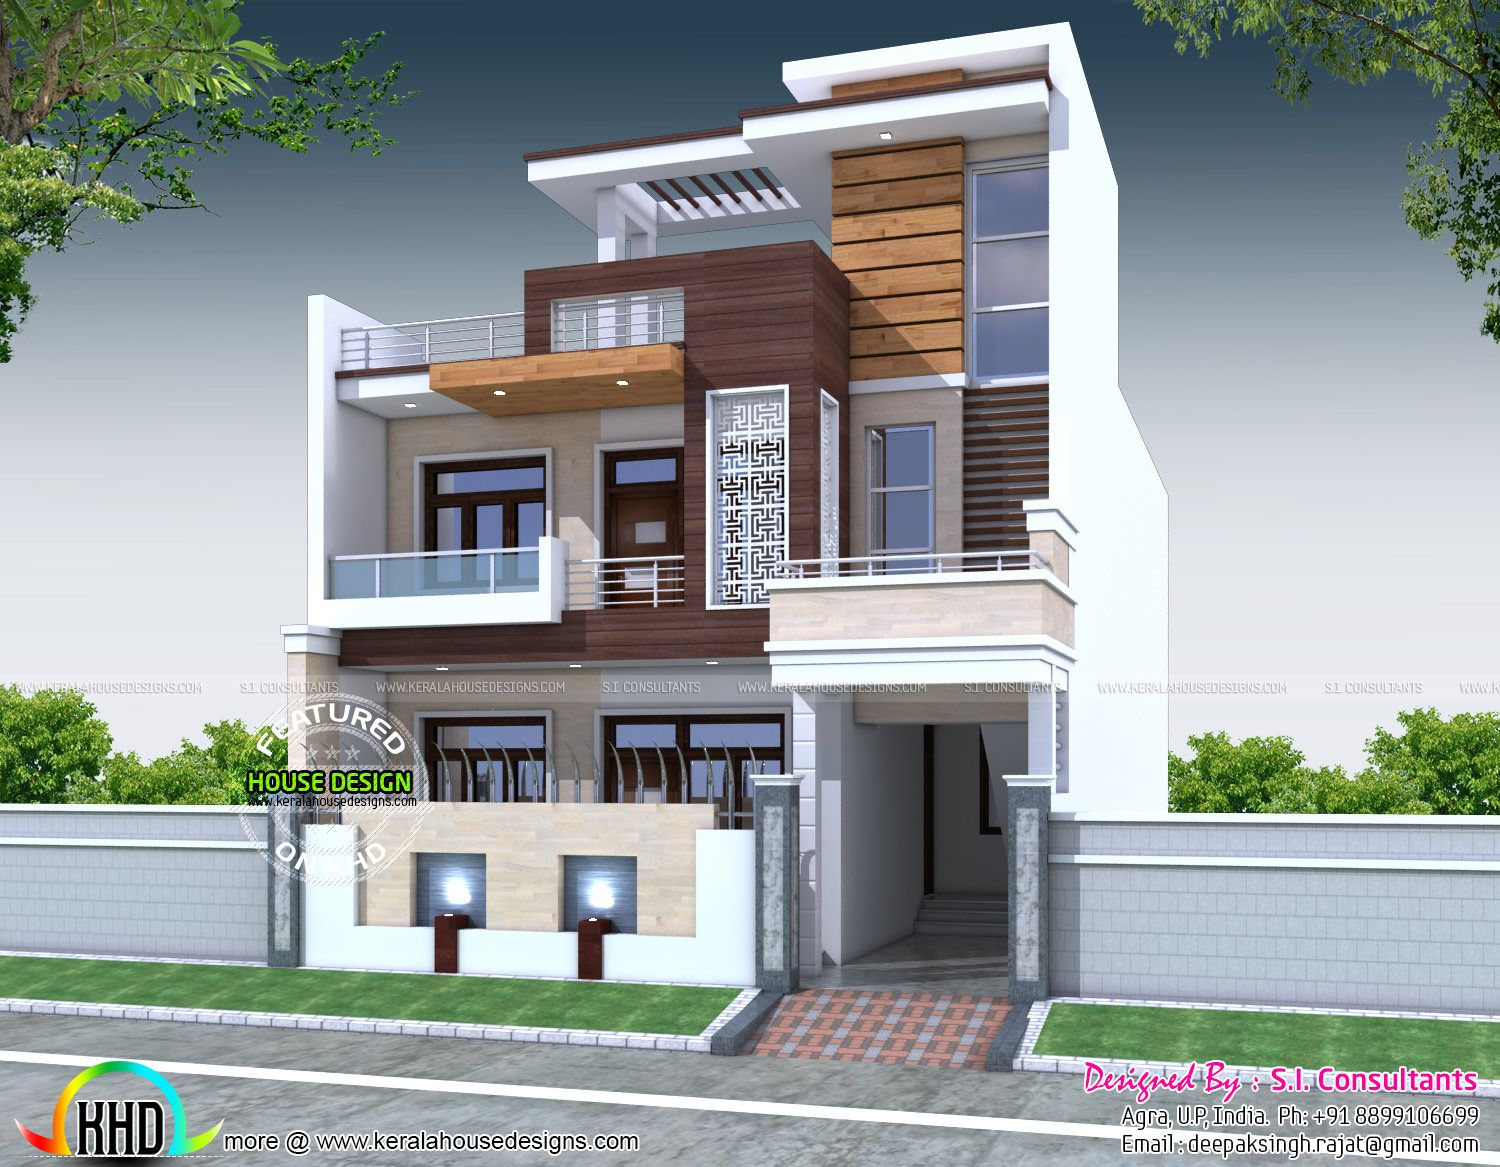 Decorative 5 Bedroom House Architecture Bungalow House Design Small House Elevation Design House Front Design